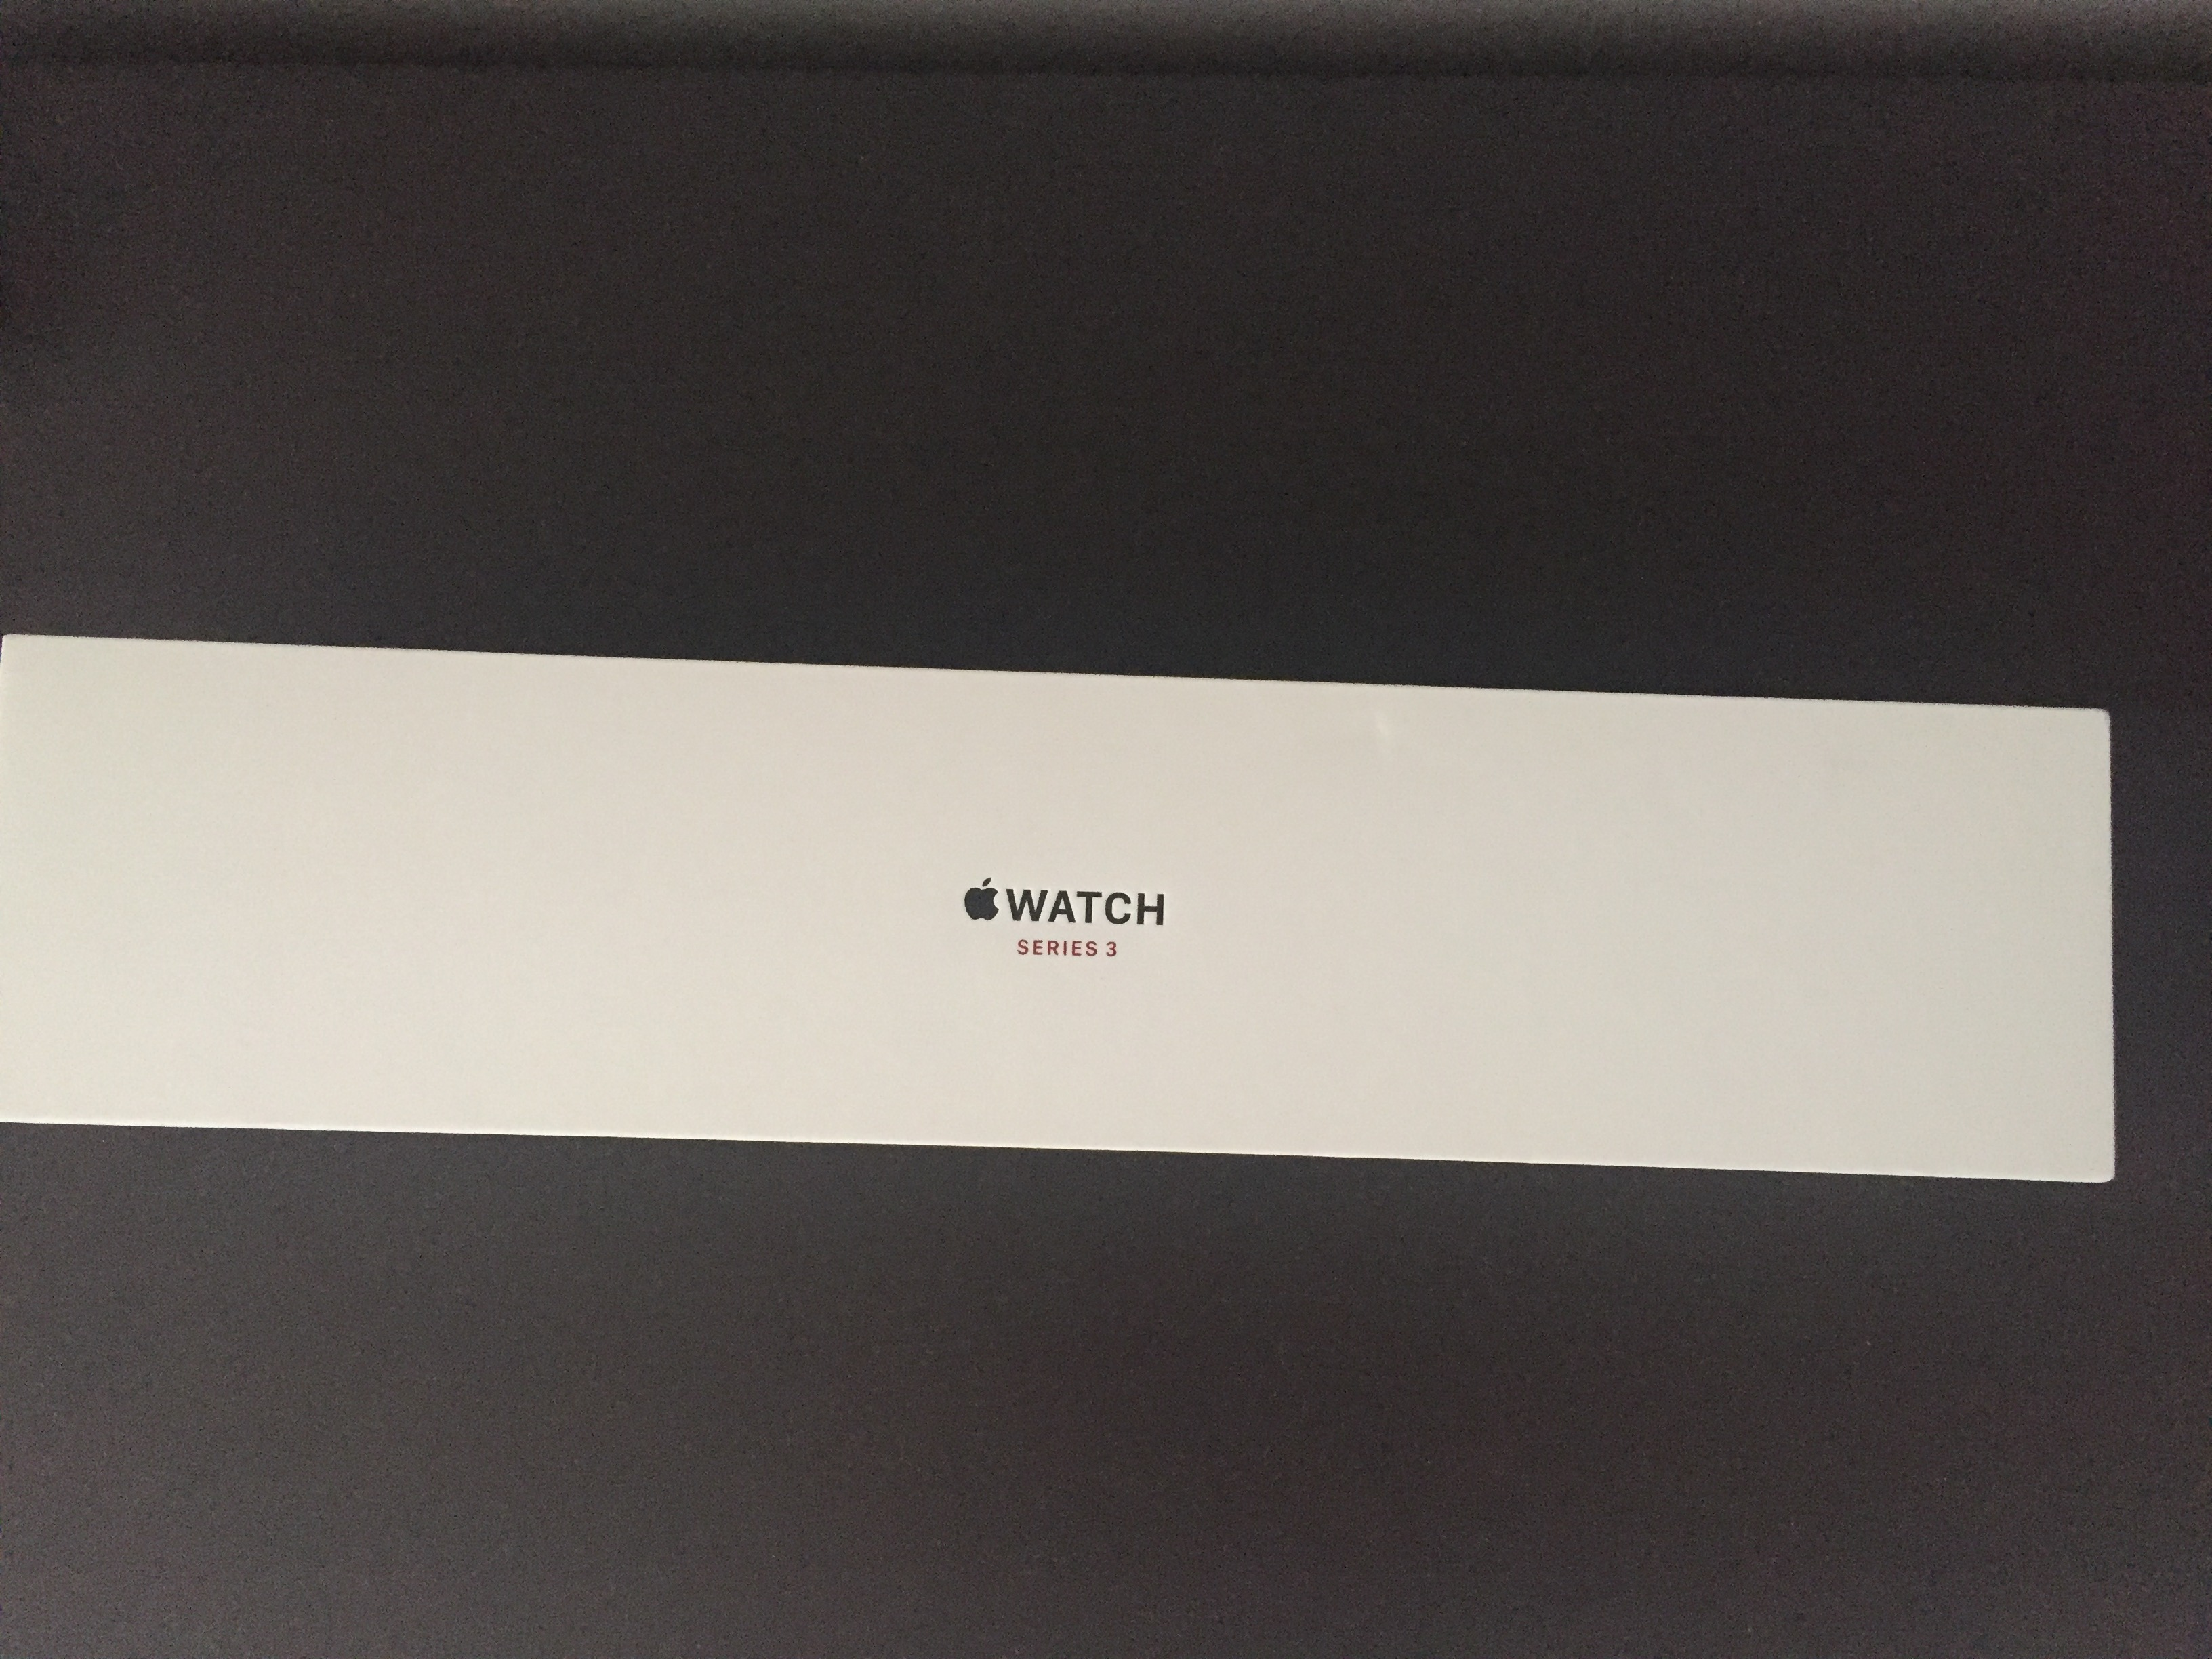 vender-apple-watch-watch-series-3-apple-segunda-mano-1577120200916142710-1